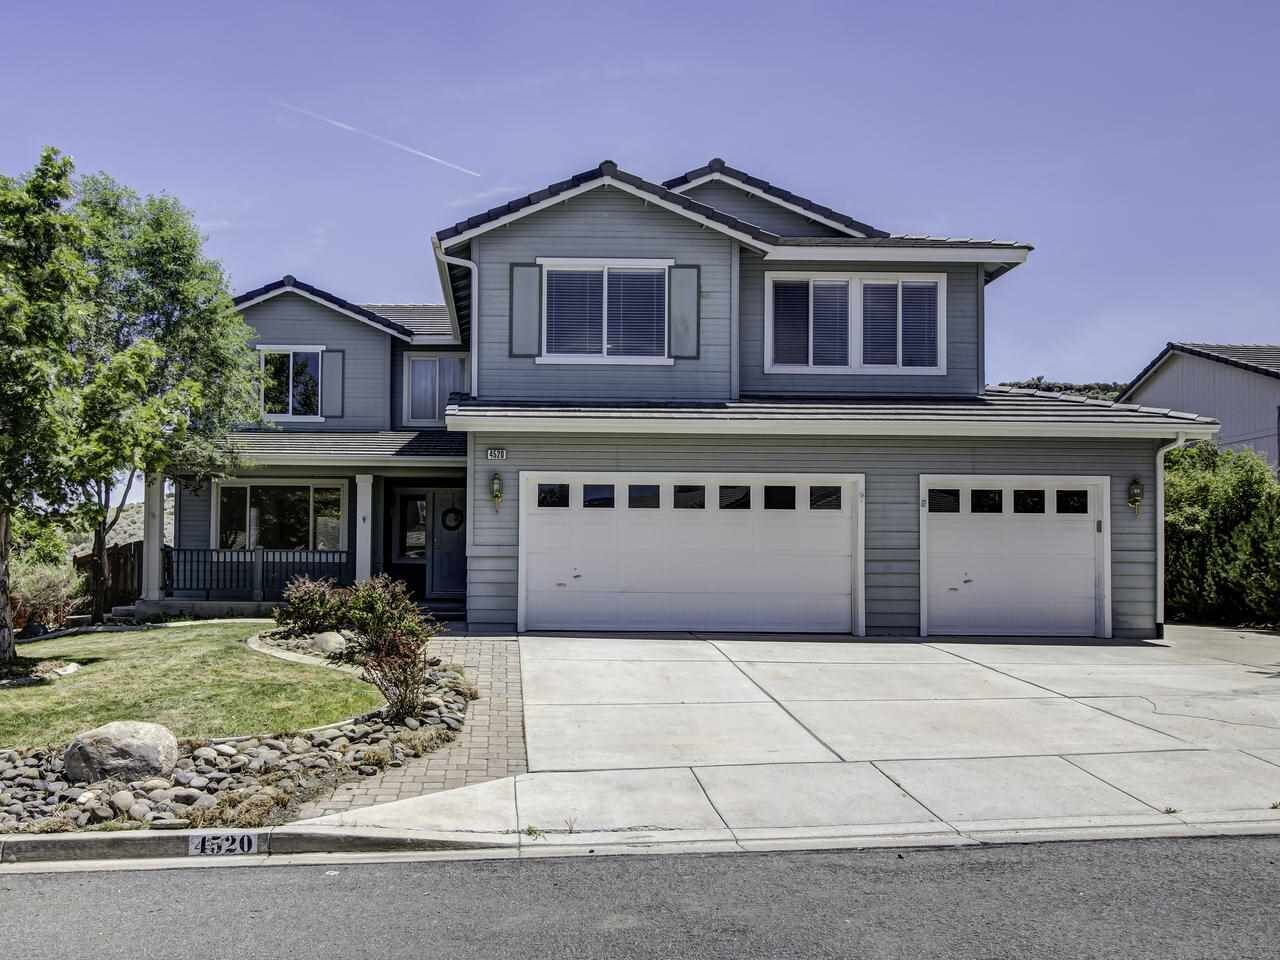 4520 Great Falls Loop, Reno, NV  4 Bed | 3 Bath | 2,583 sqft | $594,900 Rick and Mindy DeCosta | 775.393.9507